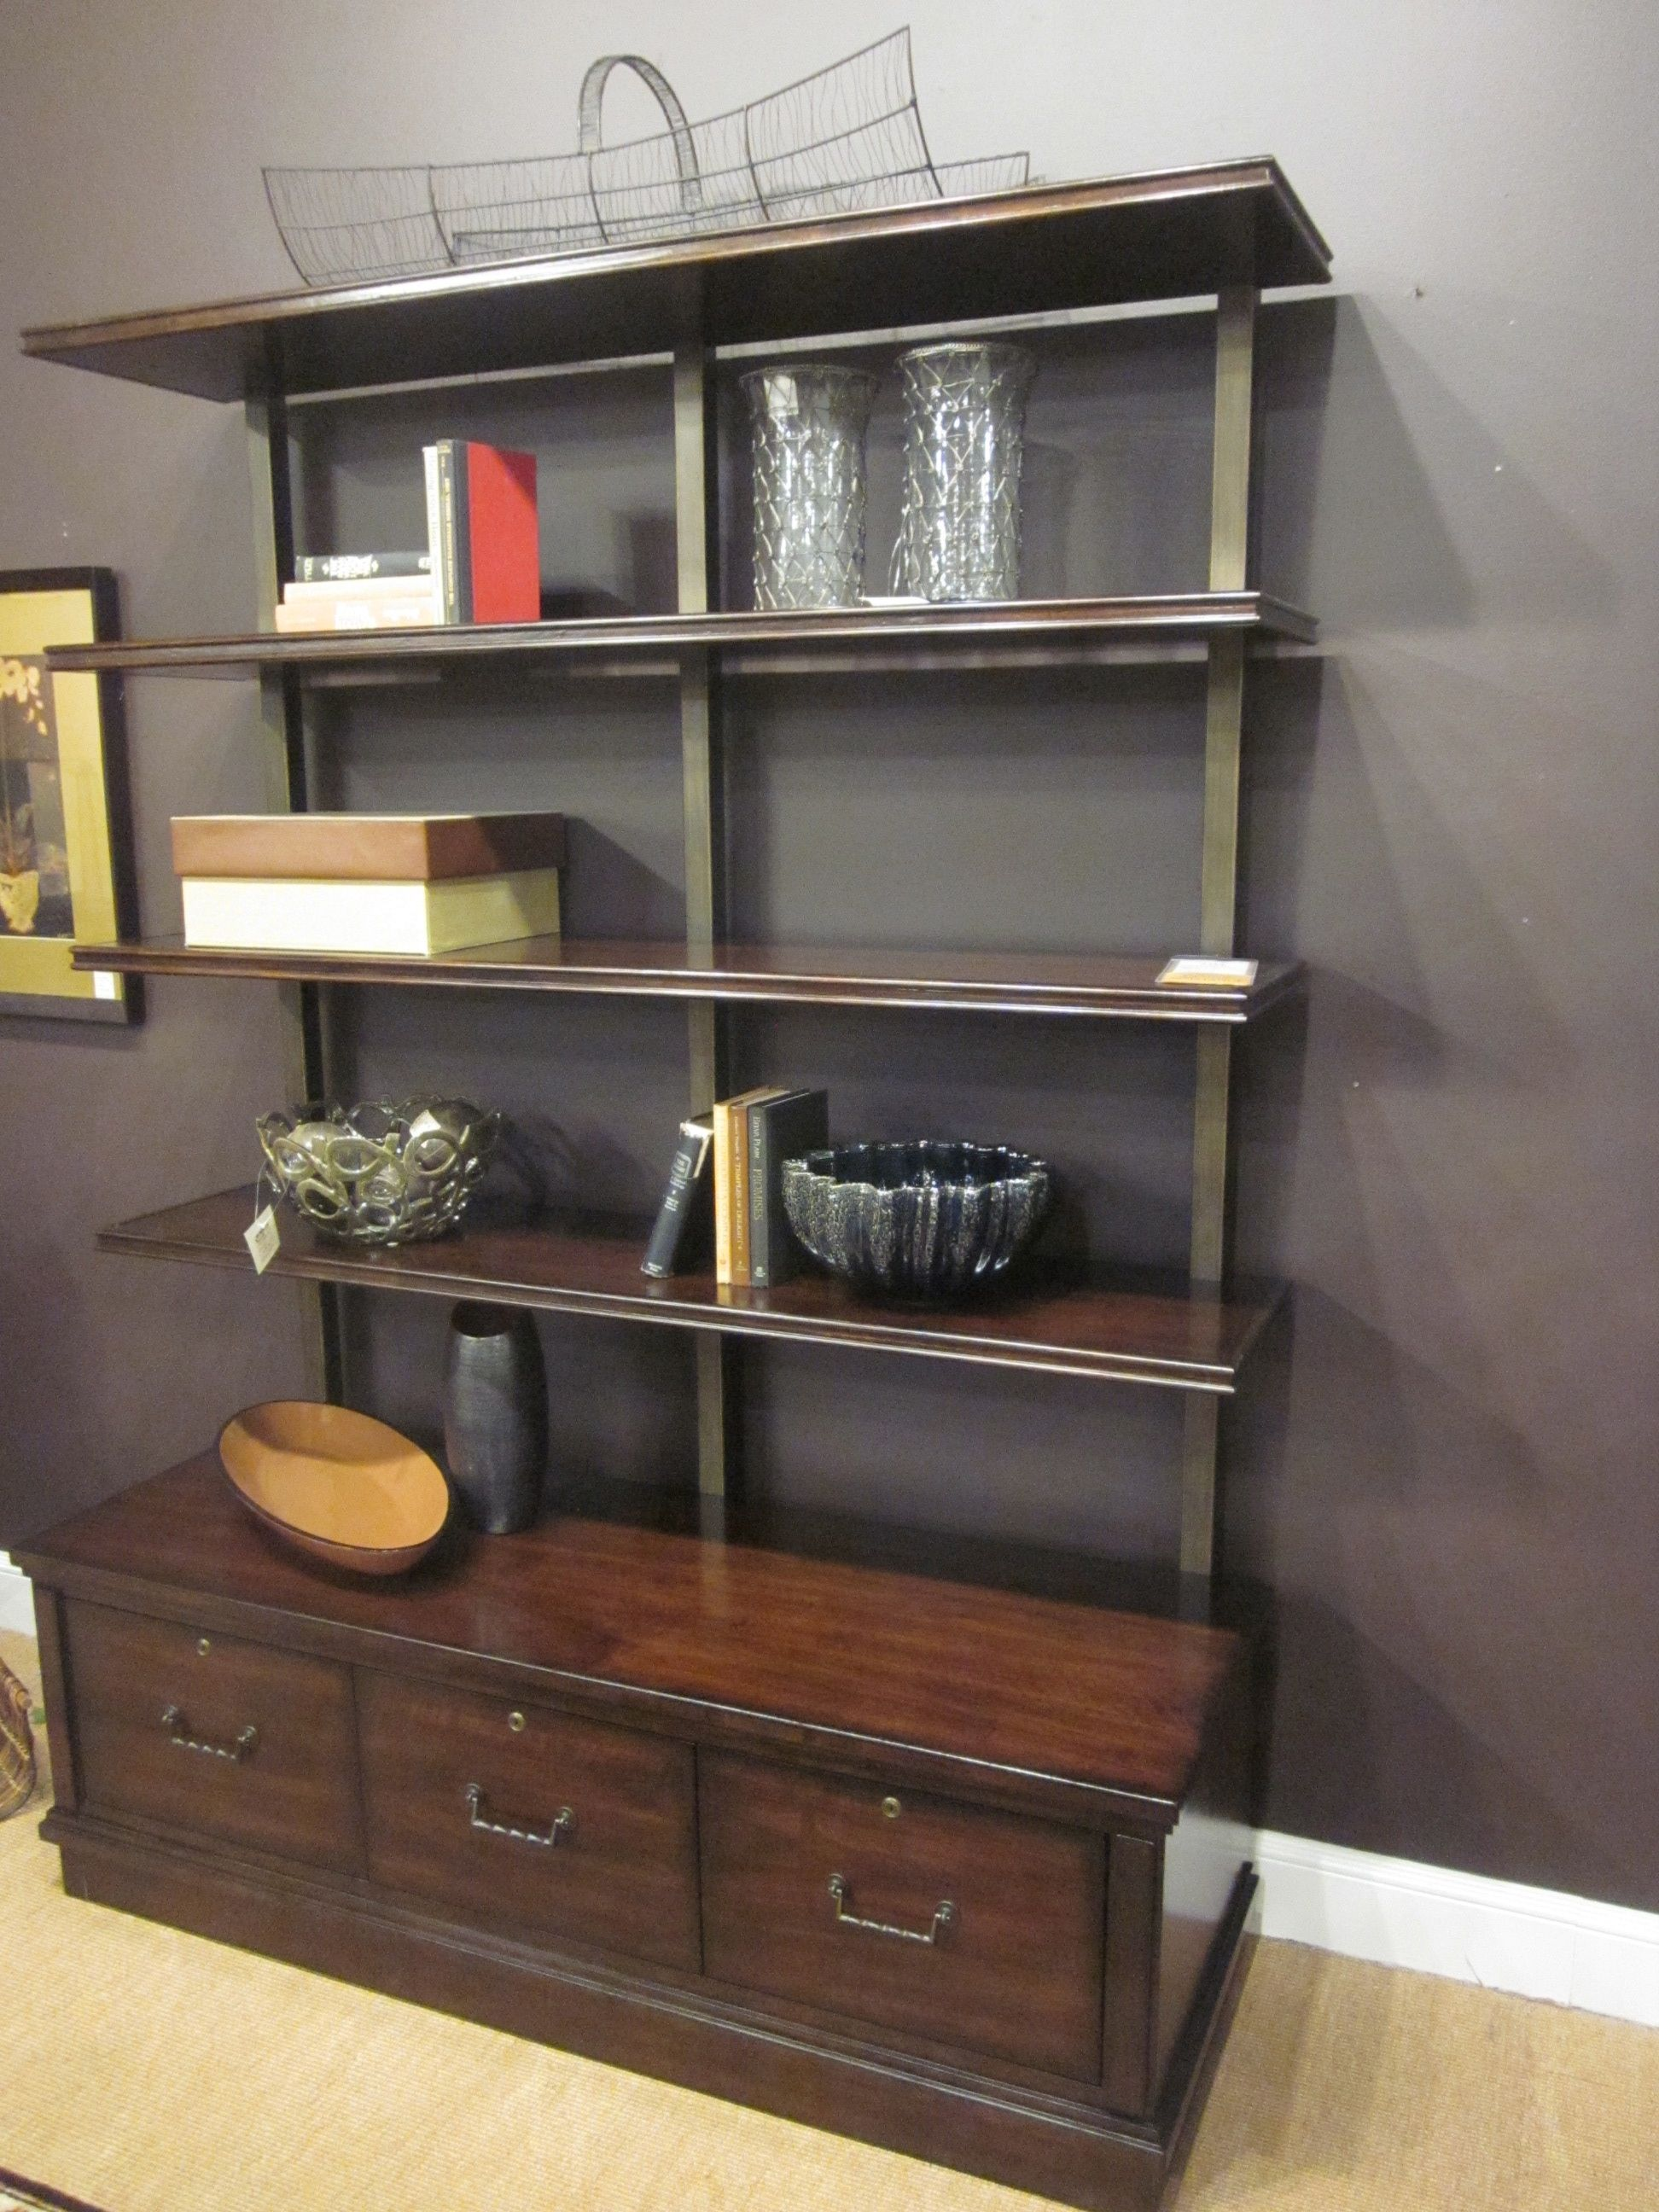 Hooker Furniture Palisade Bookcase in Figured Walnut 3 locking